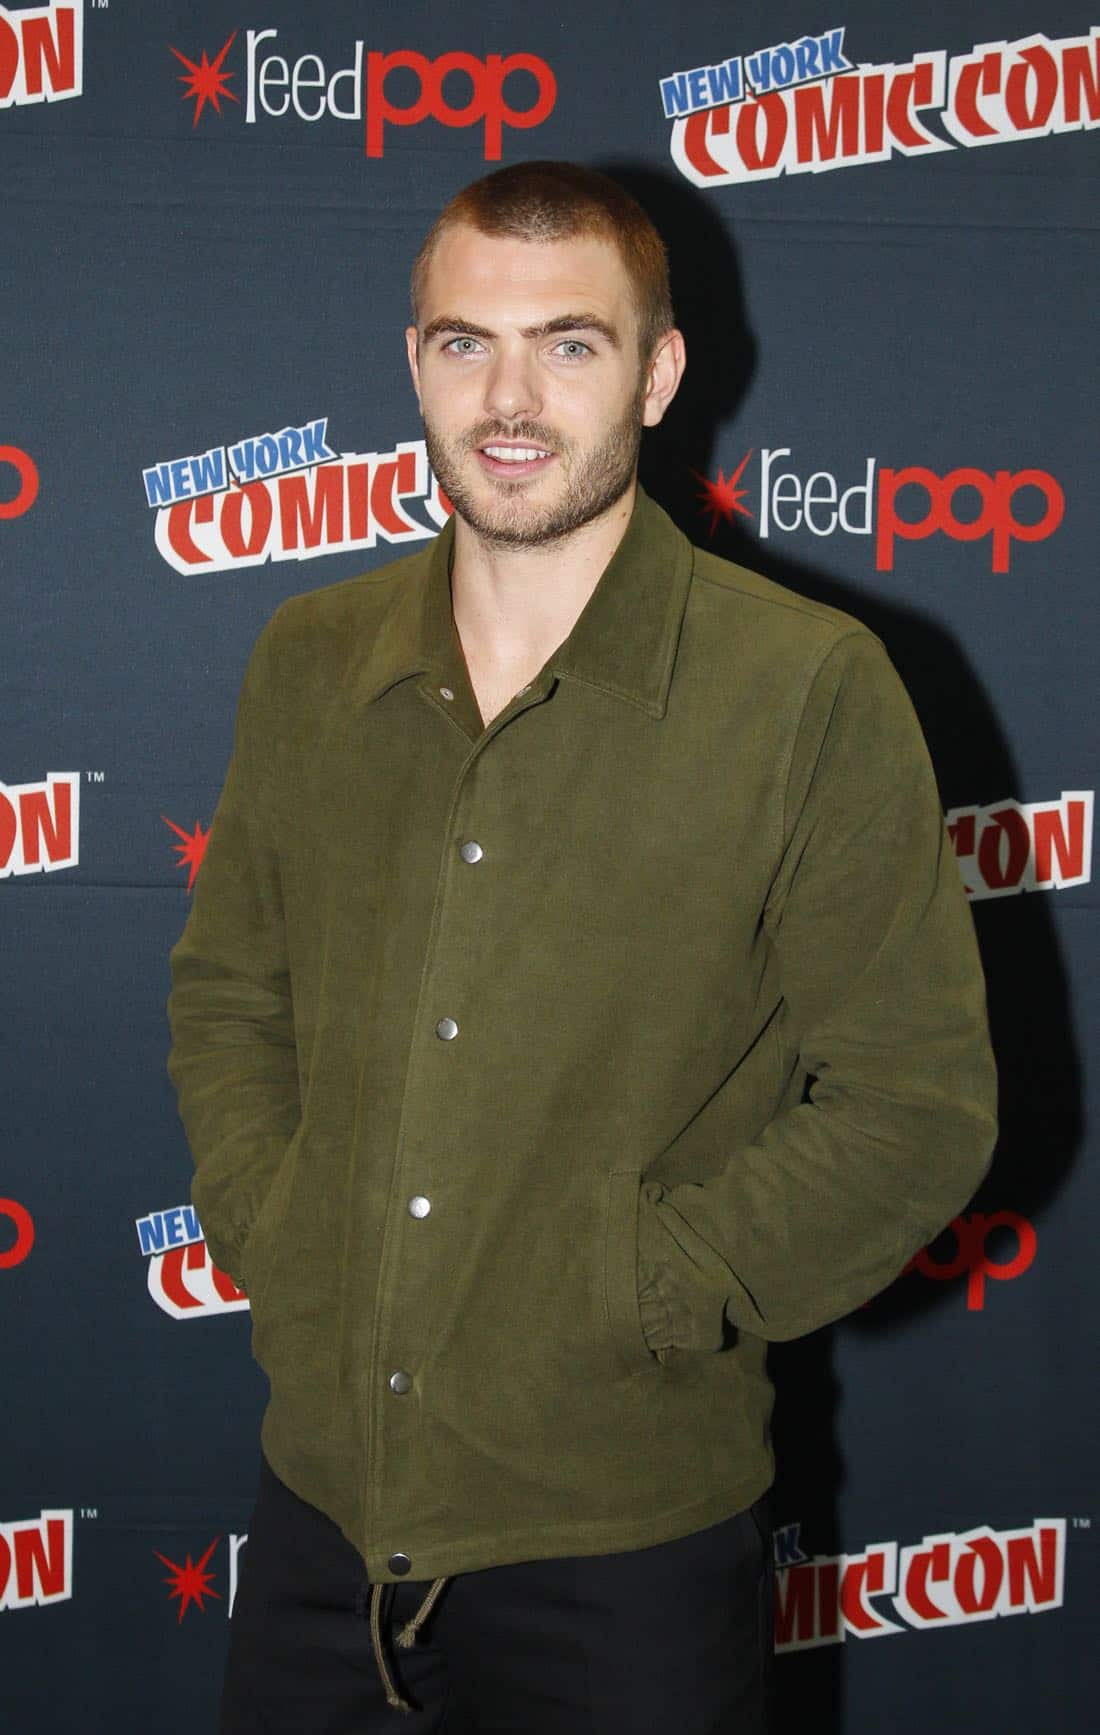 "NY COMIC-CON 2017 - SIREN - Freeform's genre programming was out in full force at this year's New York Comic Con on Saturday, October 7th with executive producers and cast from the hit series ""Shadowhunters,"" ""Beyond,"" and new original series ""Siren.""  (Freeform/Lou Rocco) ALEX ROE"